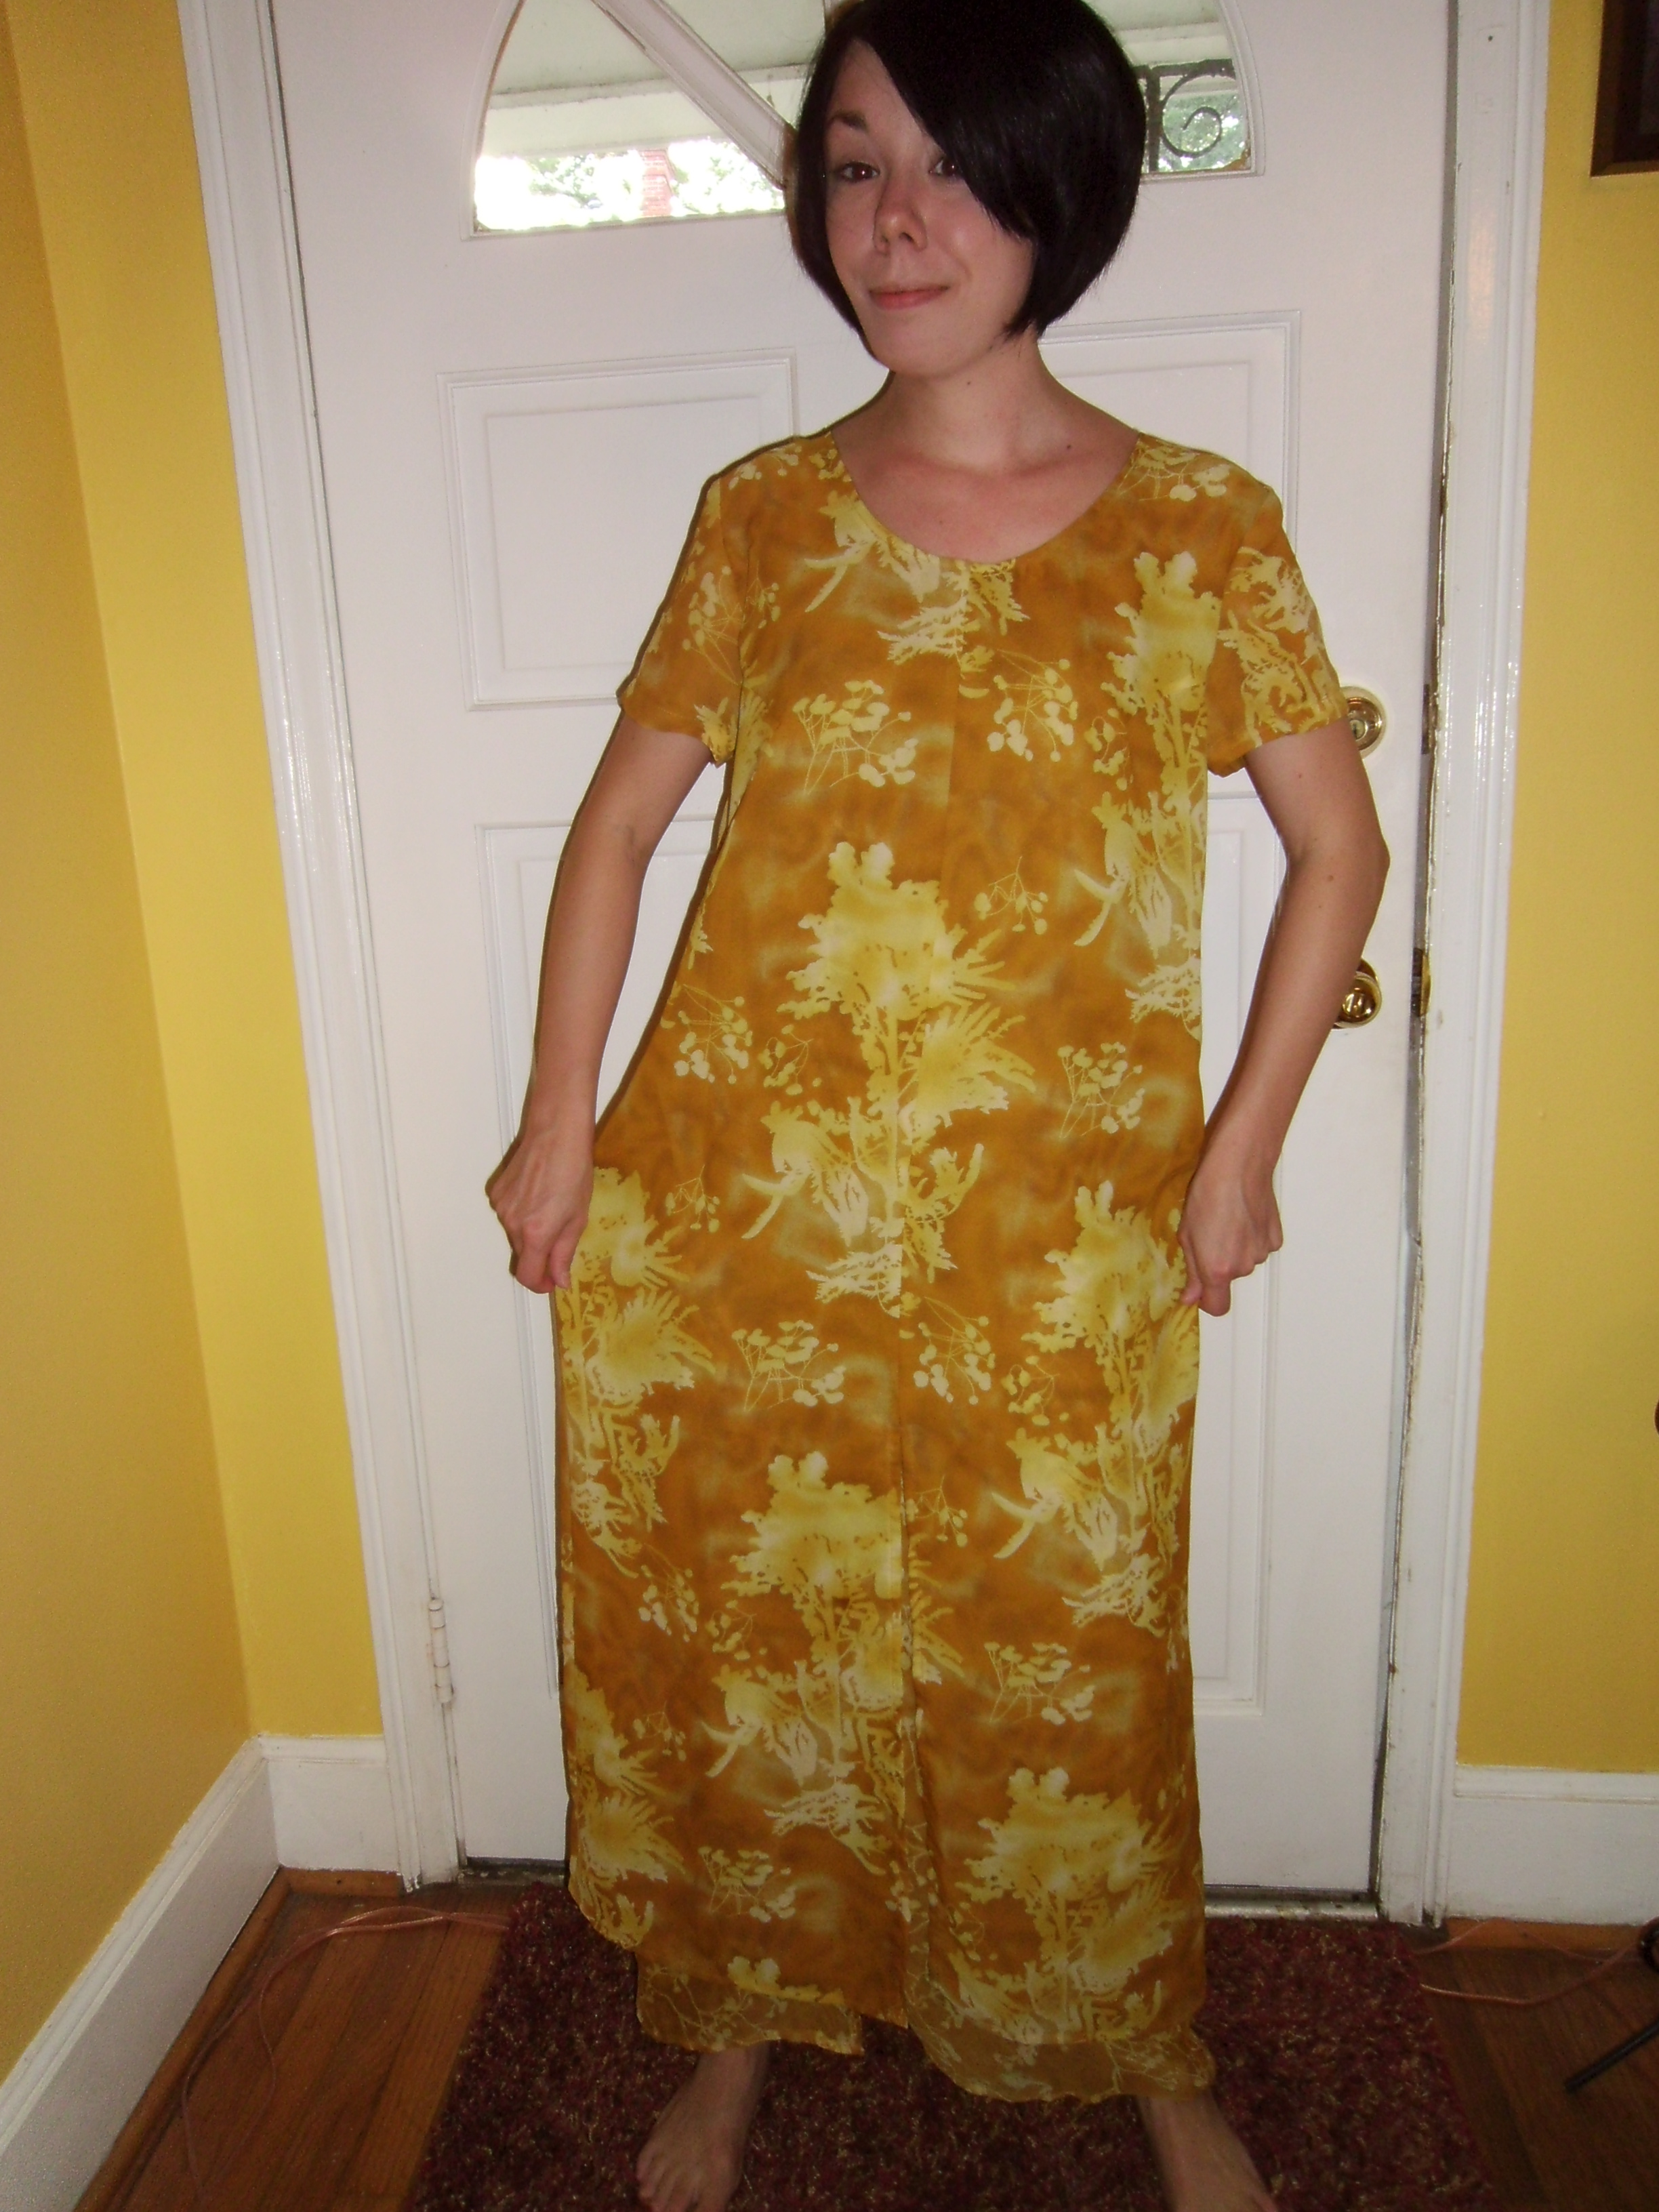 Day 64: Marigold Dress & The Nana Giveaway Winner! 12